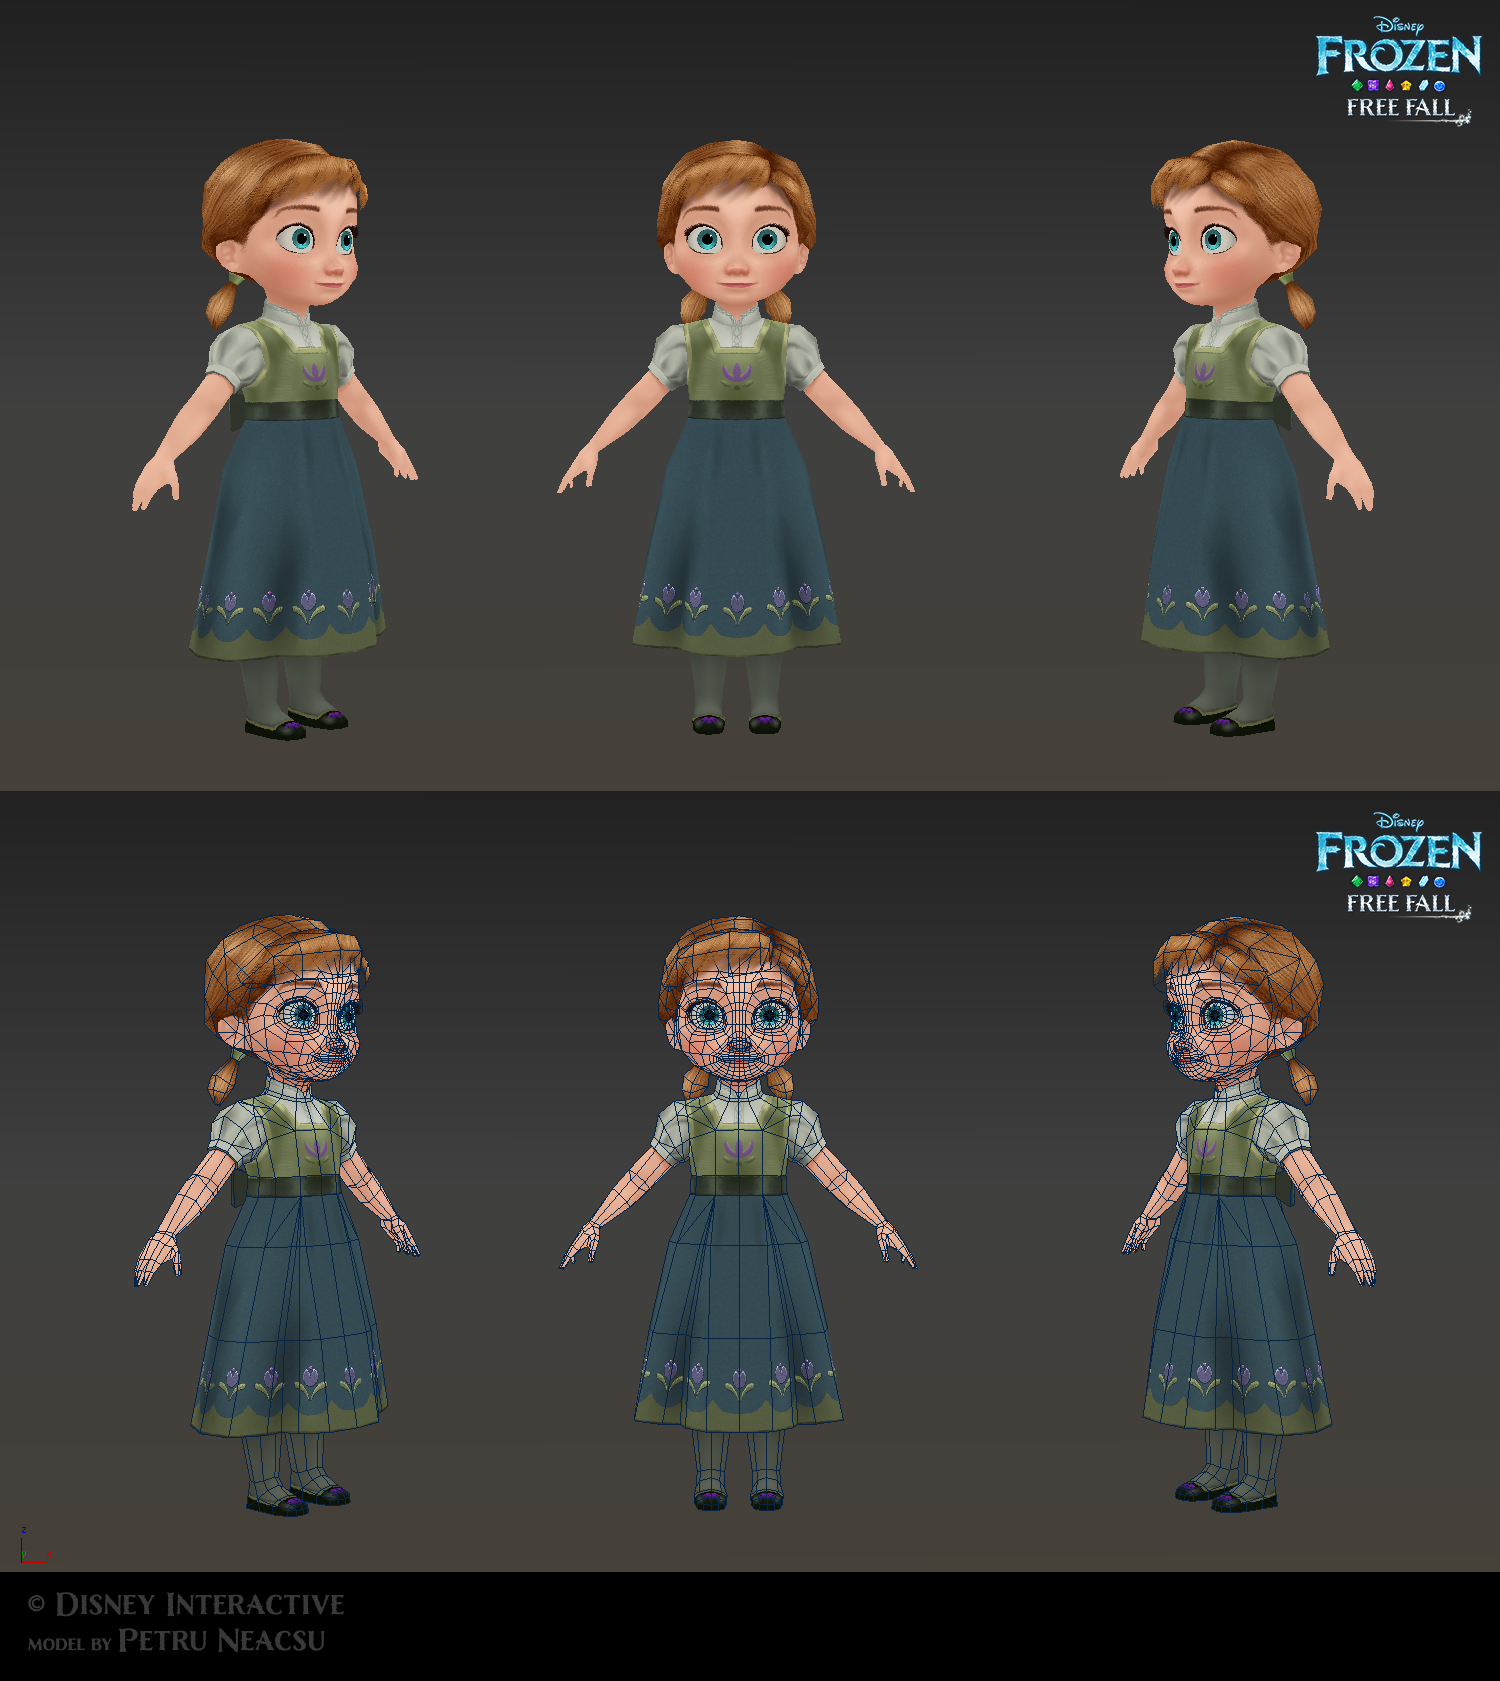 Anna child - Low poly model for Frozen Free Fall by Shaka-zl | Low